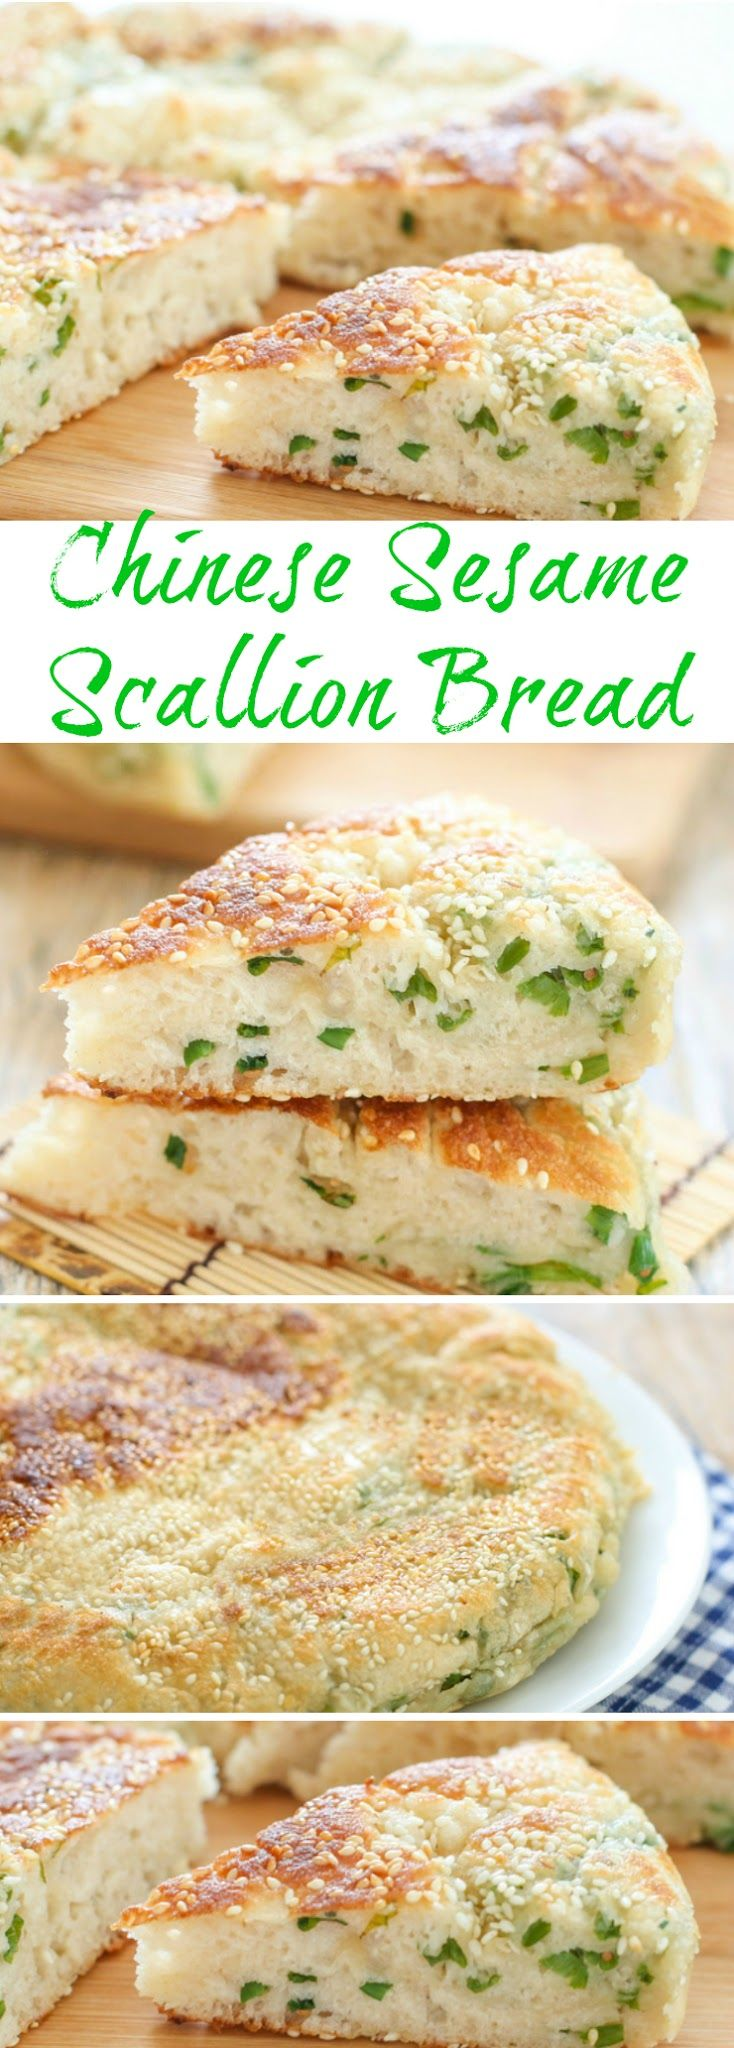 Chinese Sesame Scallion Bread. Includes step by step photos!